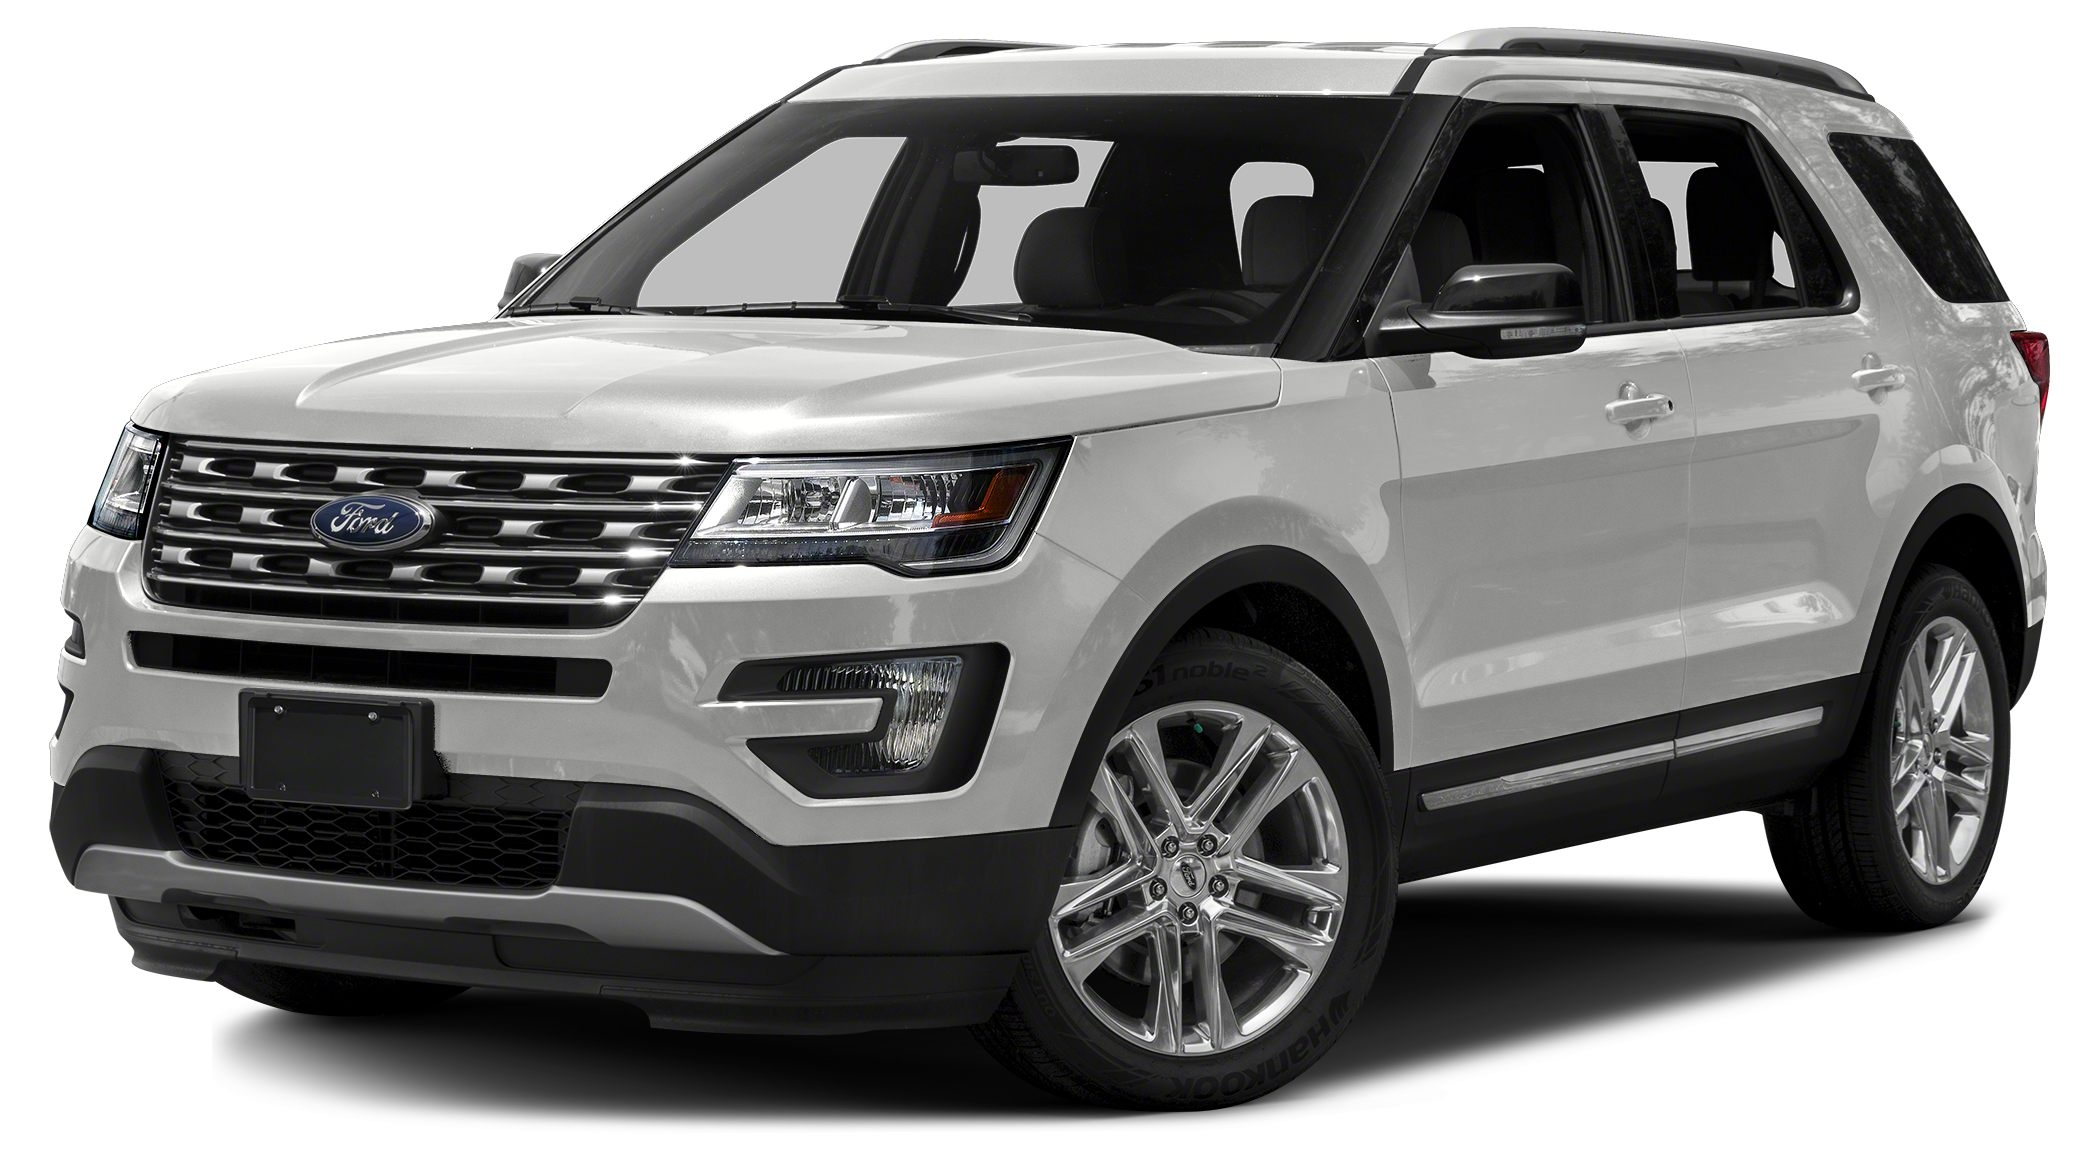 ford explorert sensational top desktop wallpaper hd prices value ford explorer invoice price